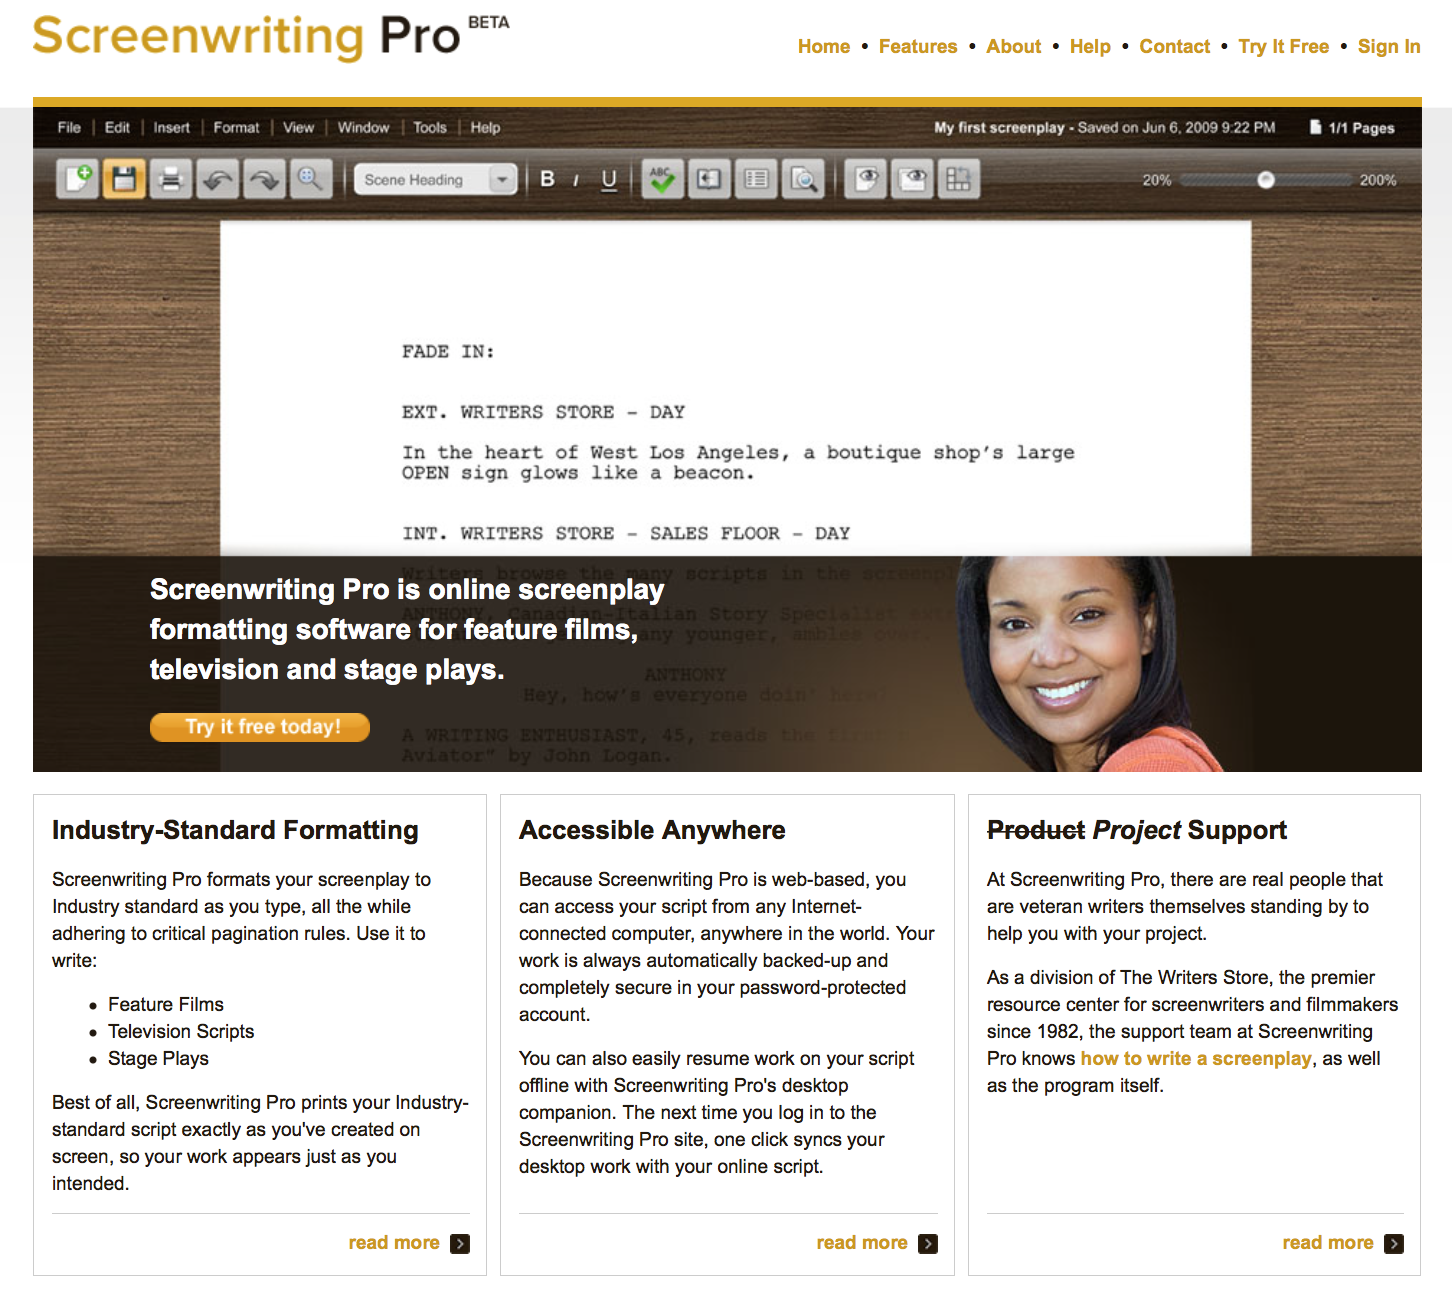 Screenwriting Pro